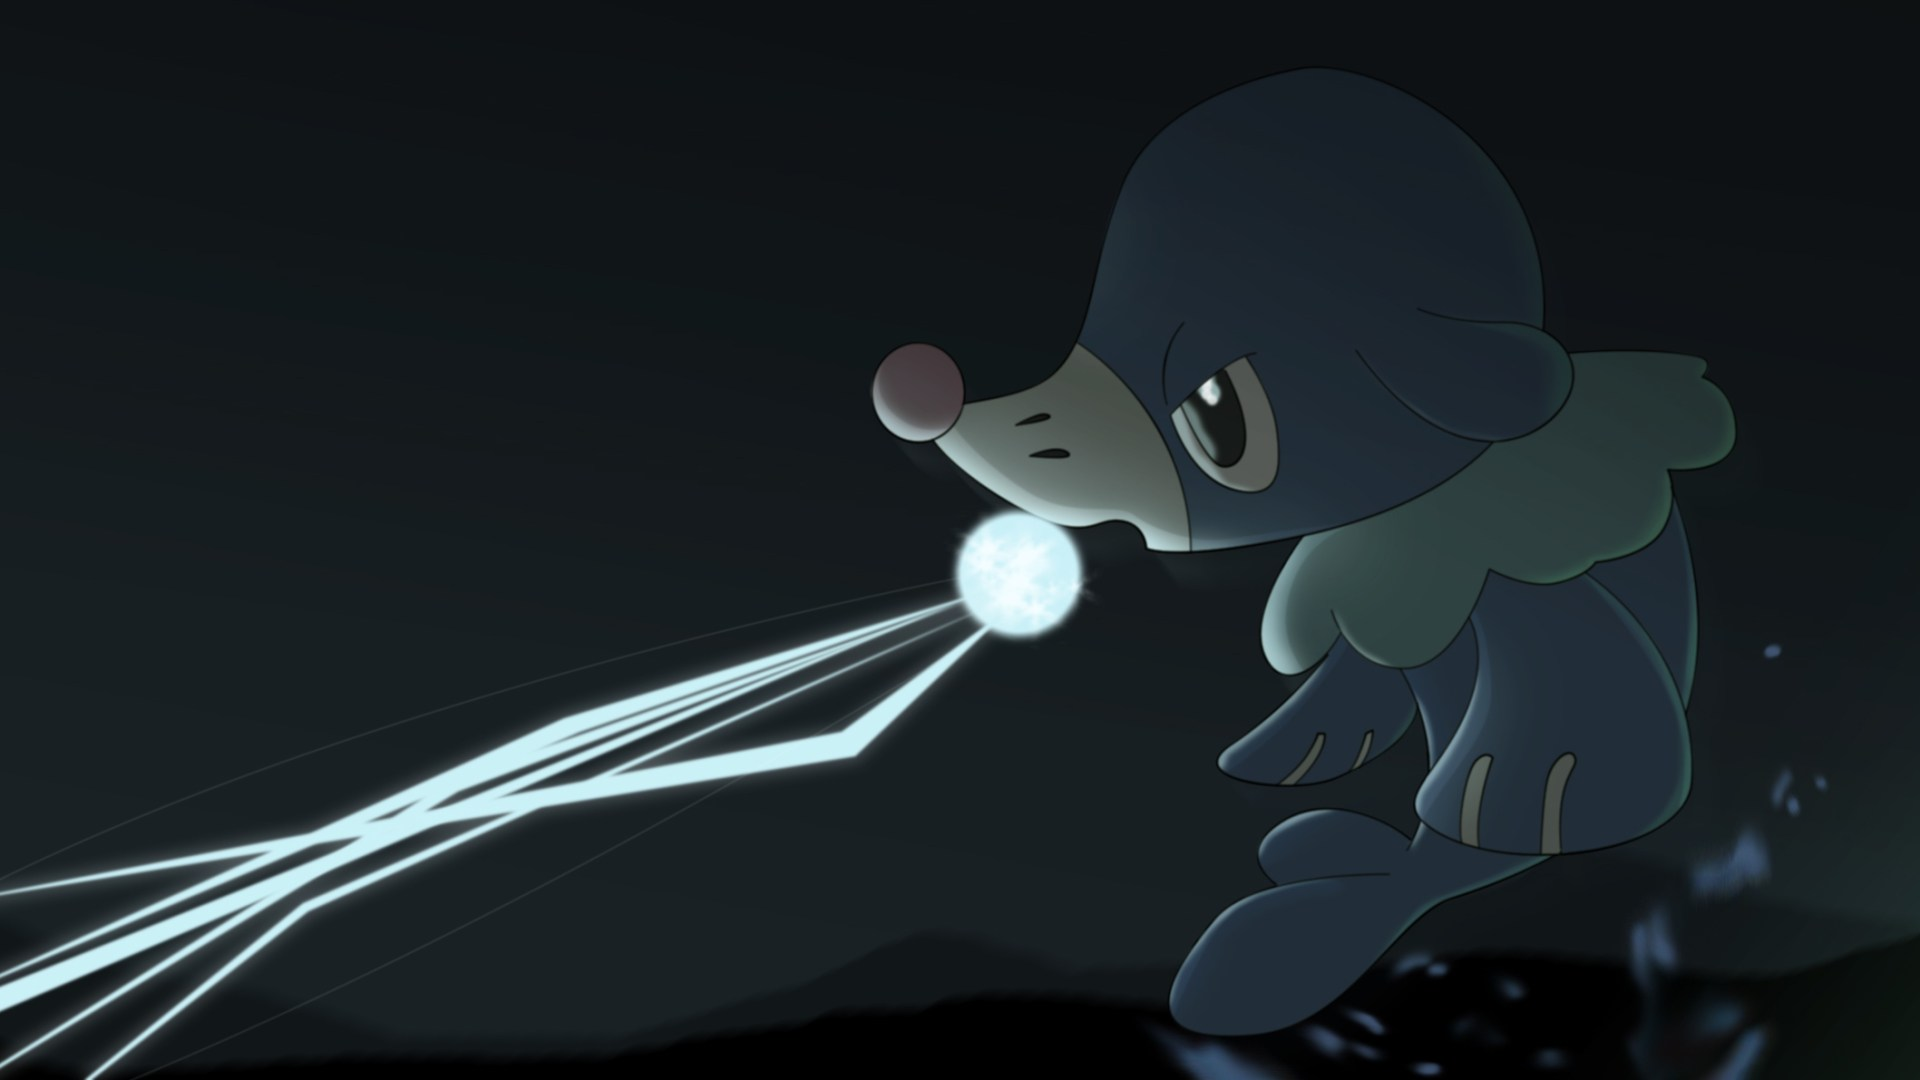 Popplio Pokemon Sun And Moon Pokemon 1080p Hd Wallpaper - Pokemon Popplio , HD Wallpaper & Backgrounds